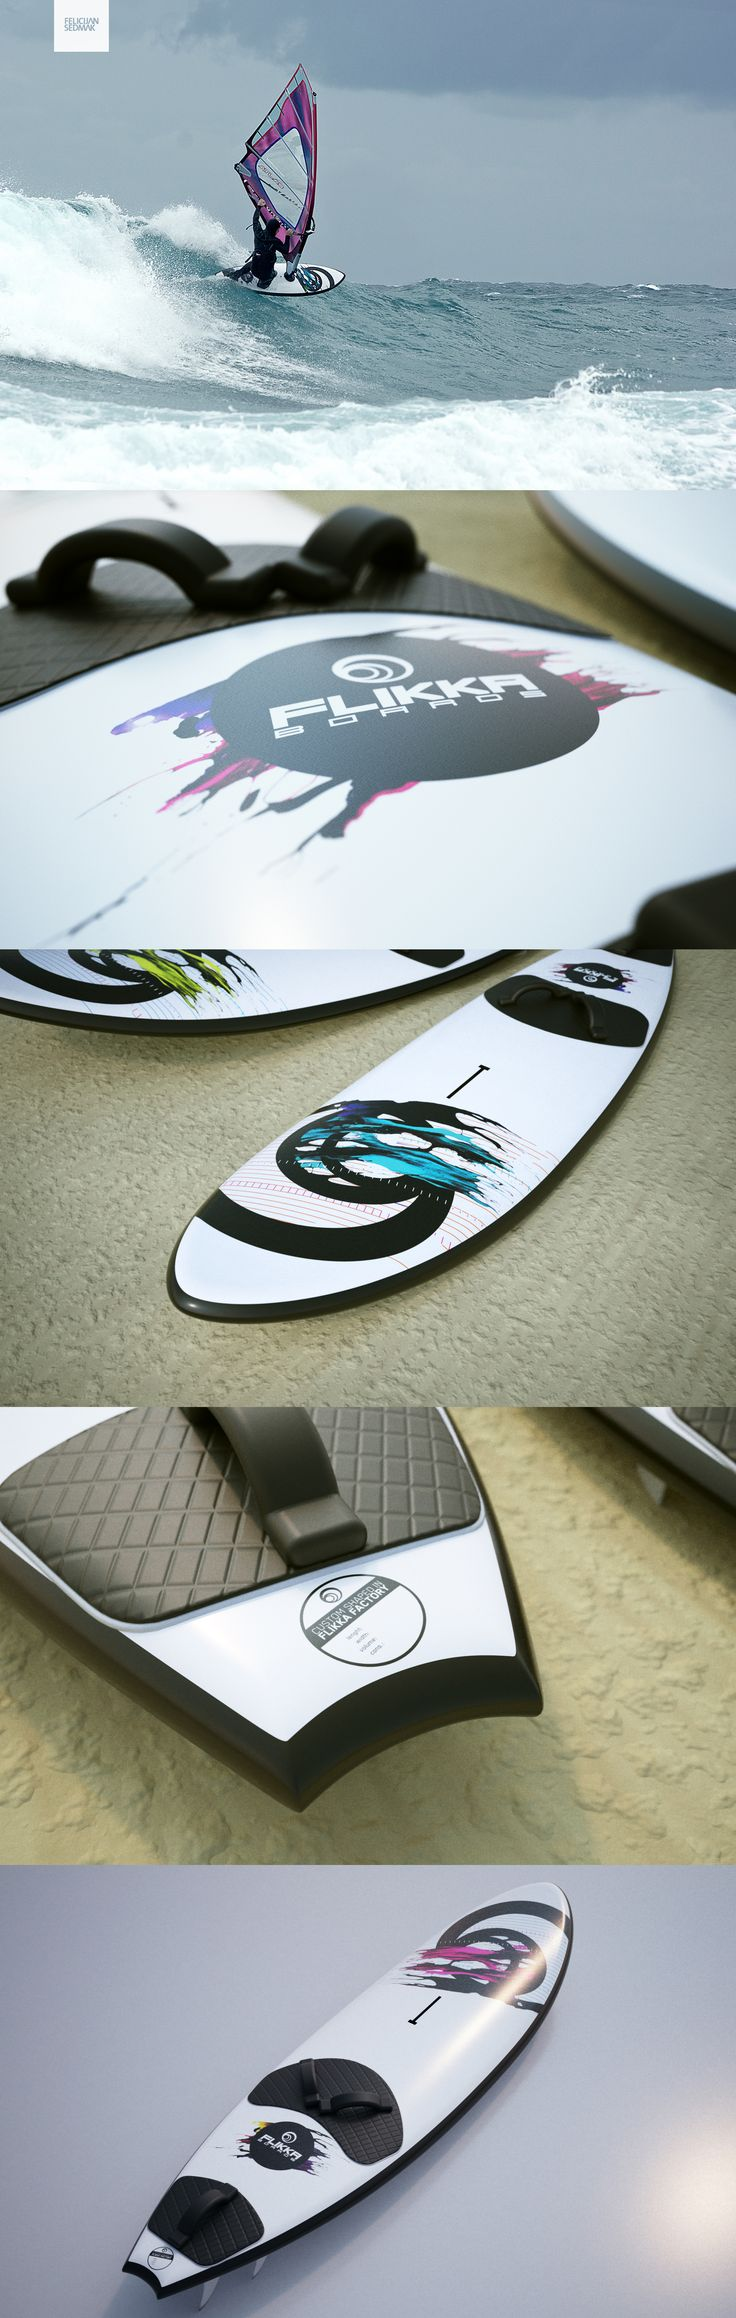 Flikka Board Design #Windsurf #Boards